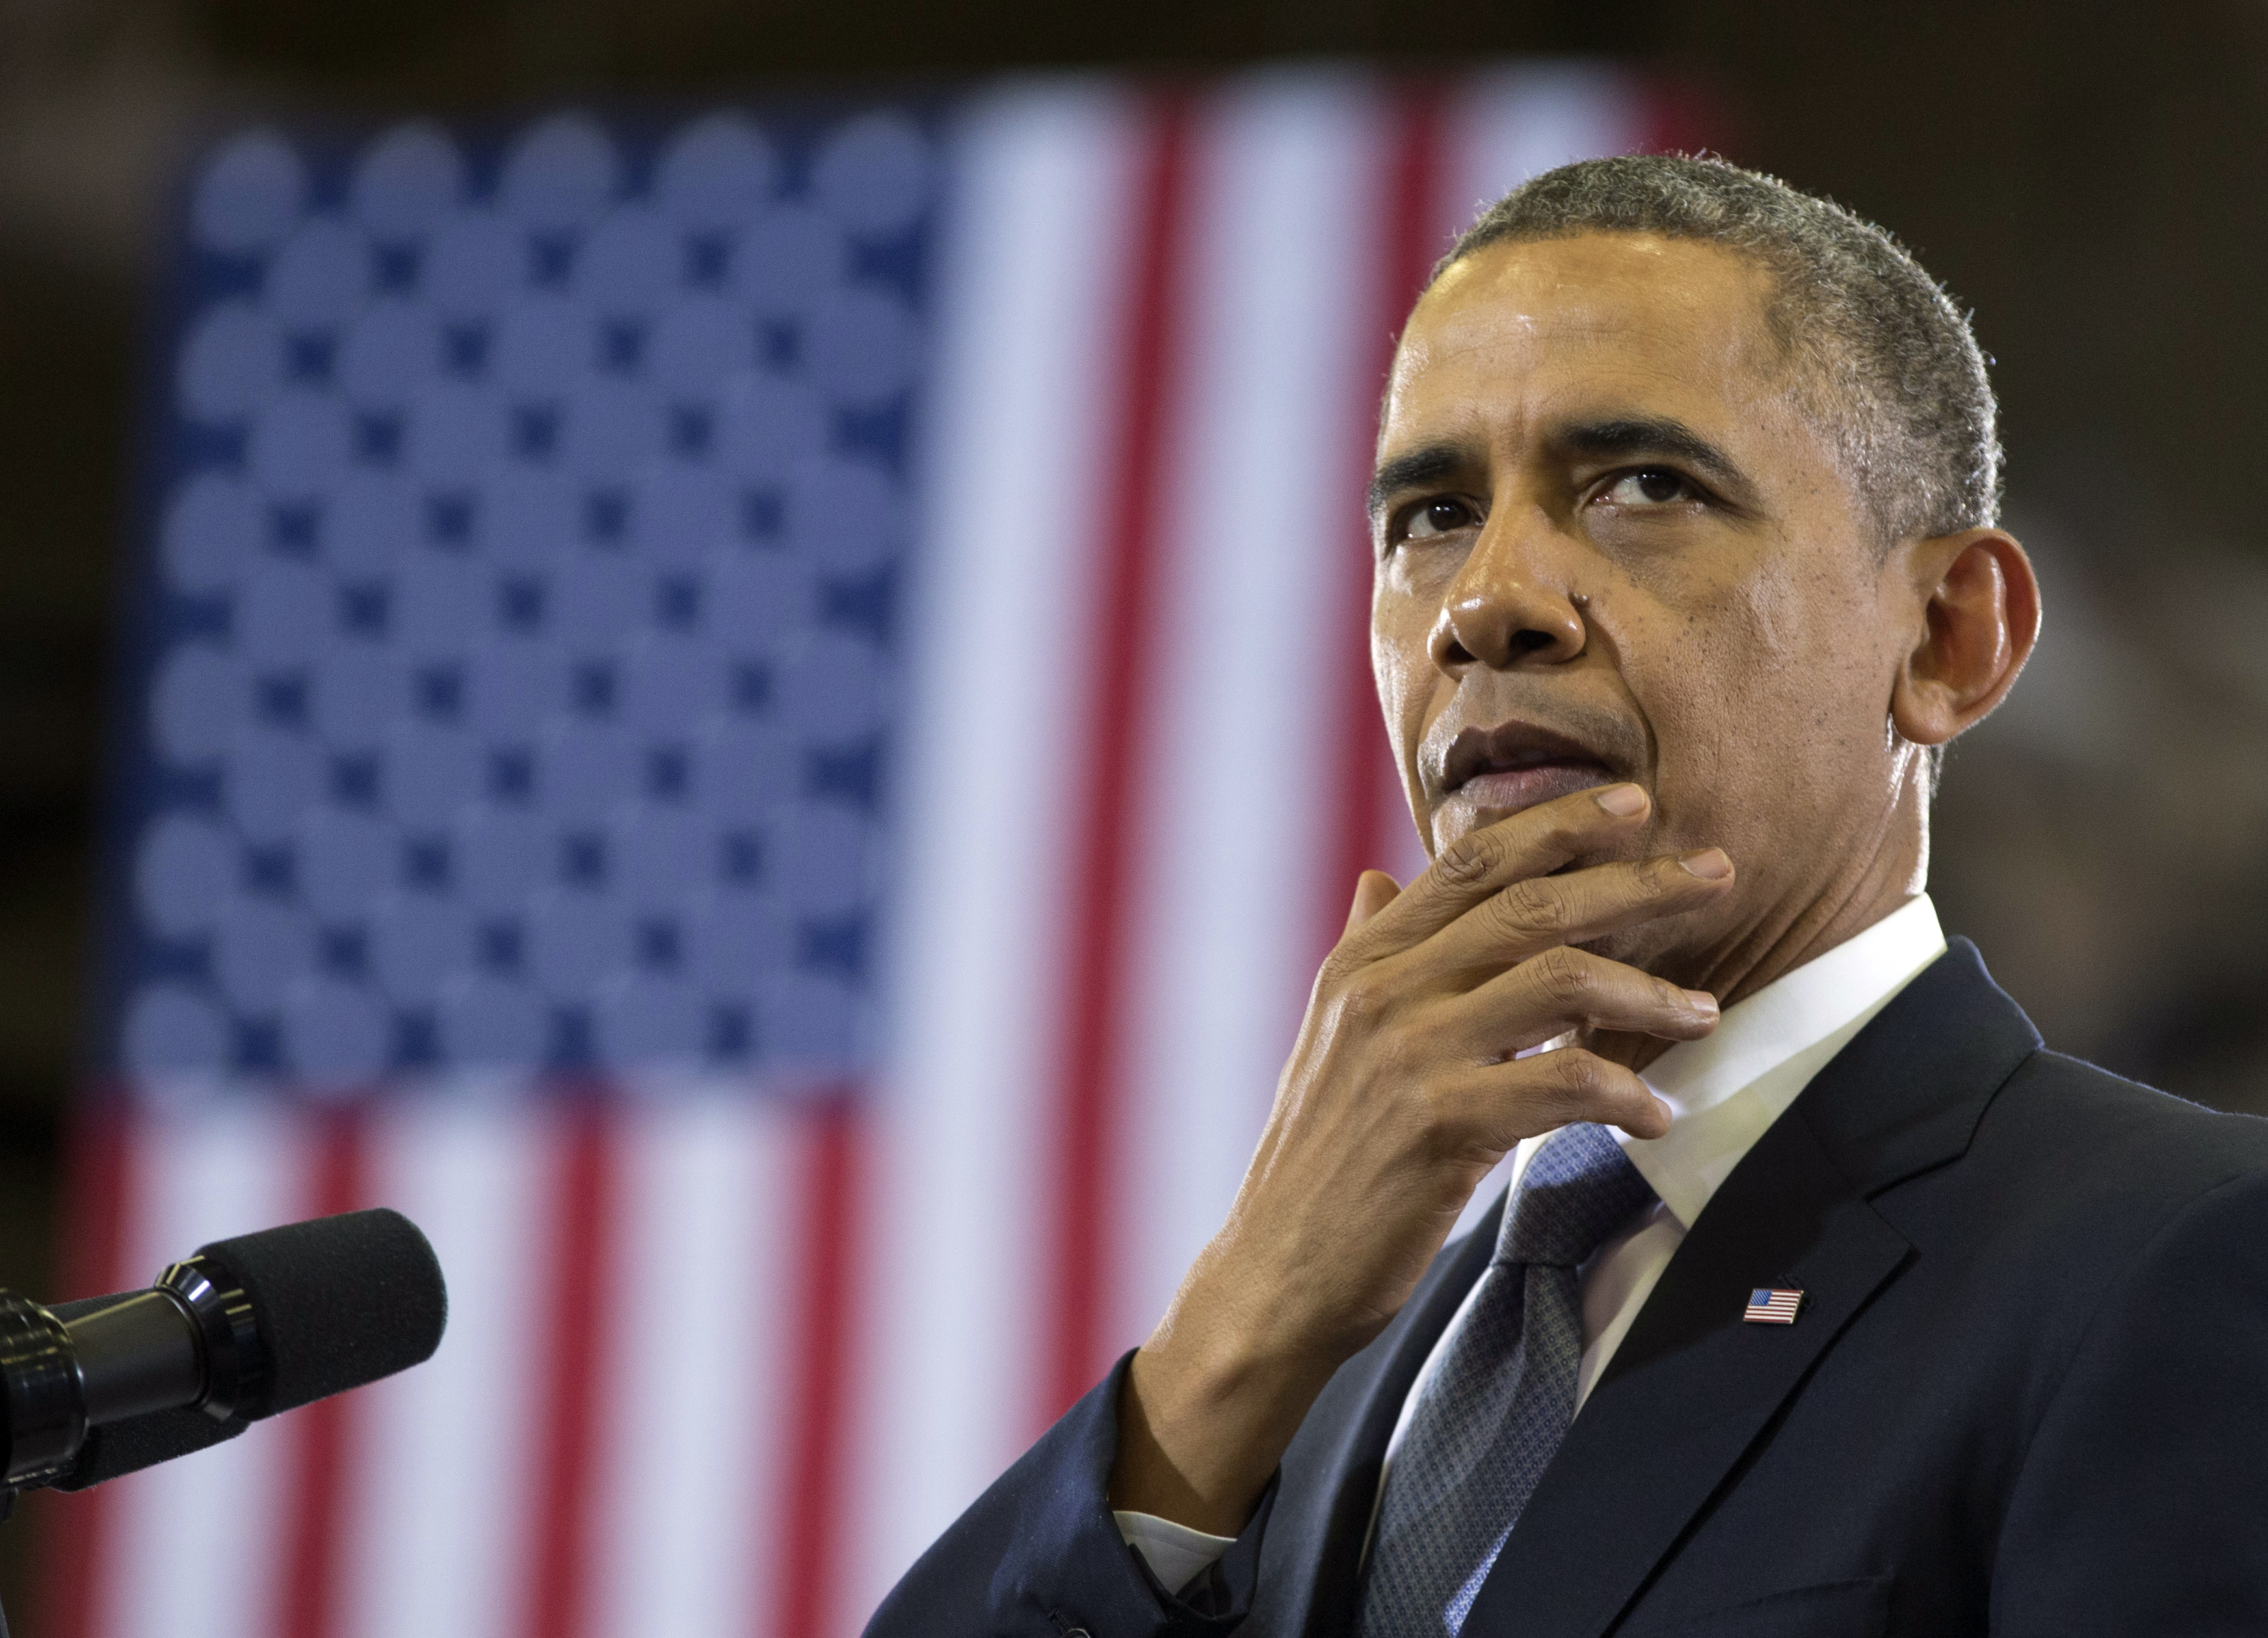 President Obama pauses as he speaks at McGavock High School, Jan. 30, 2014, in Nashville, Tenn., about education.